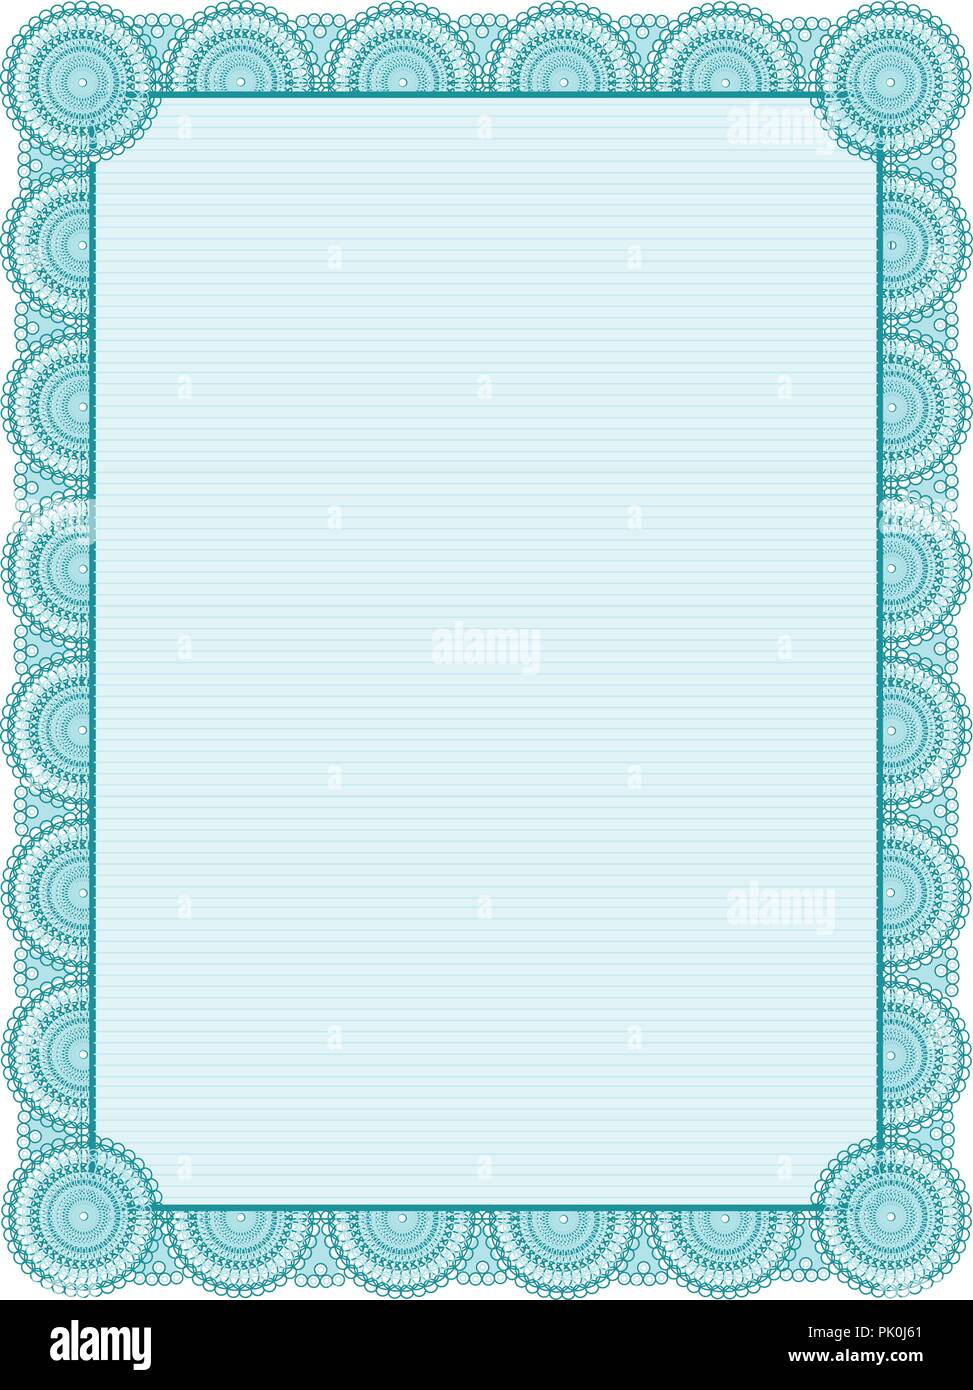 photograph regarding Printable Certificate Paper titled Blank printable certification body / template Inventory Vector